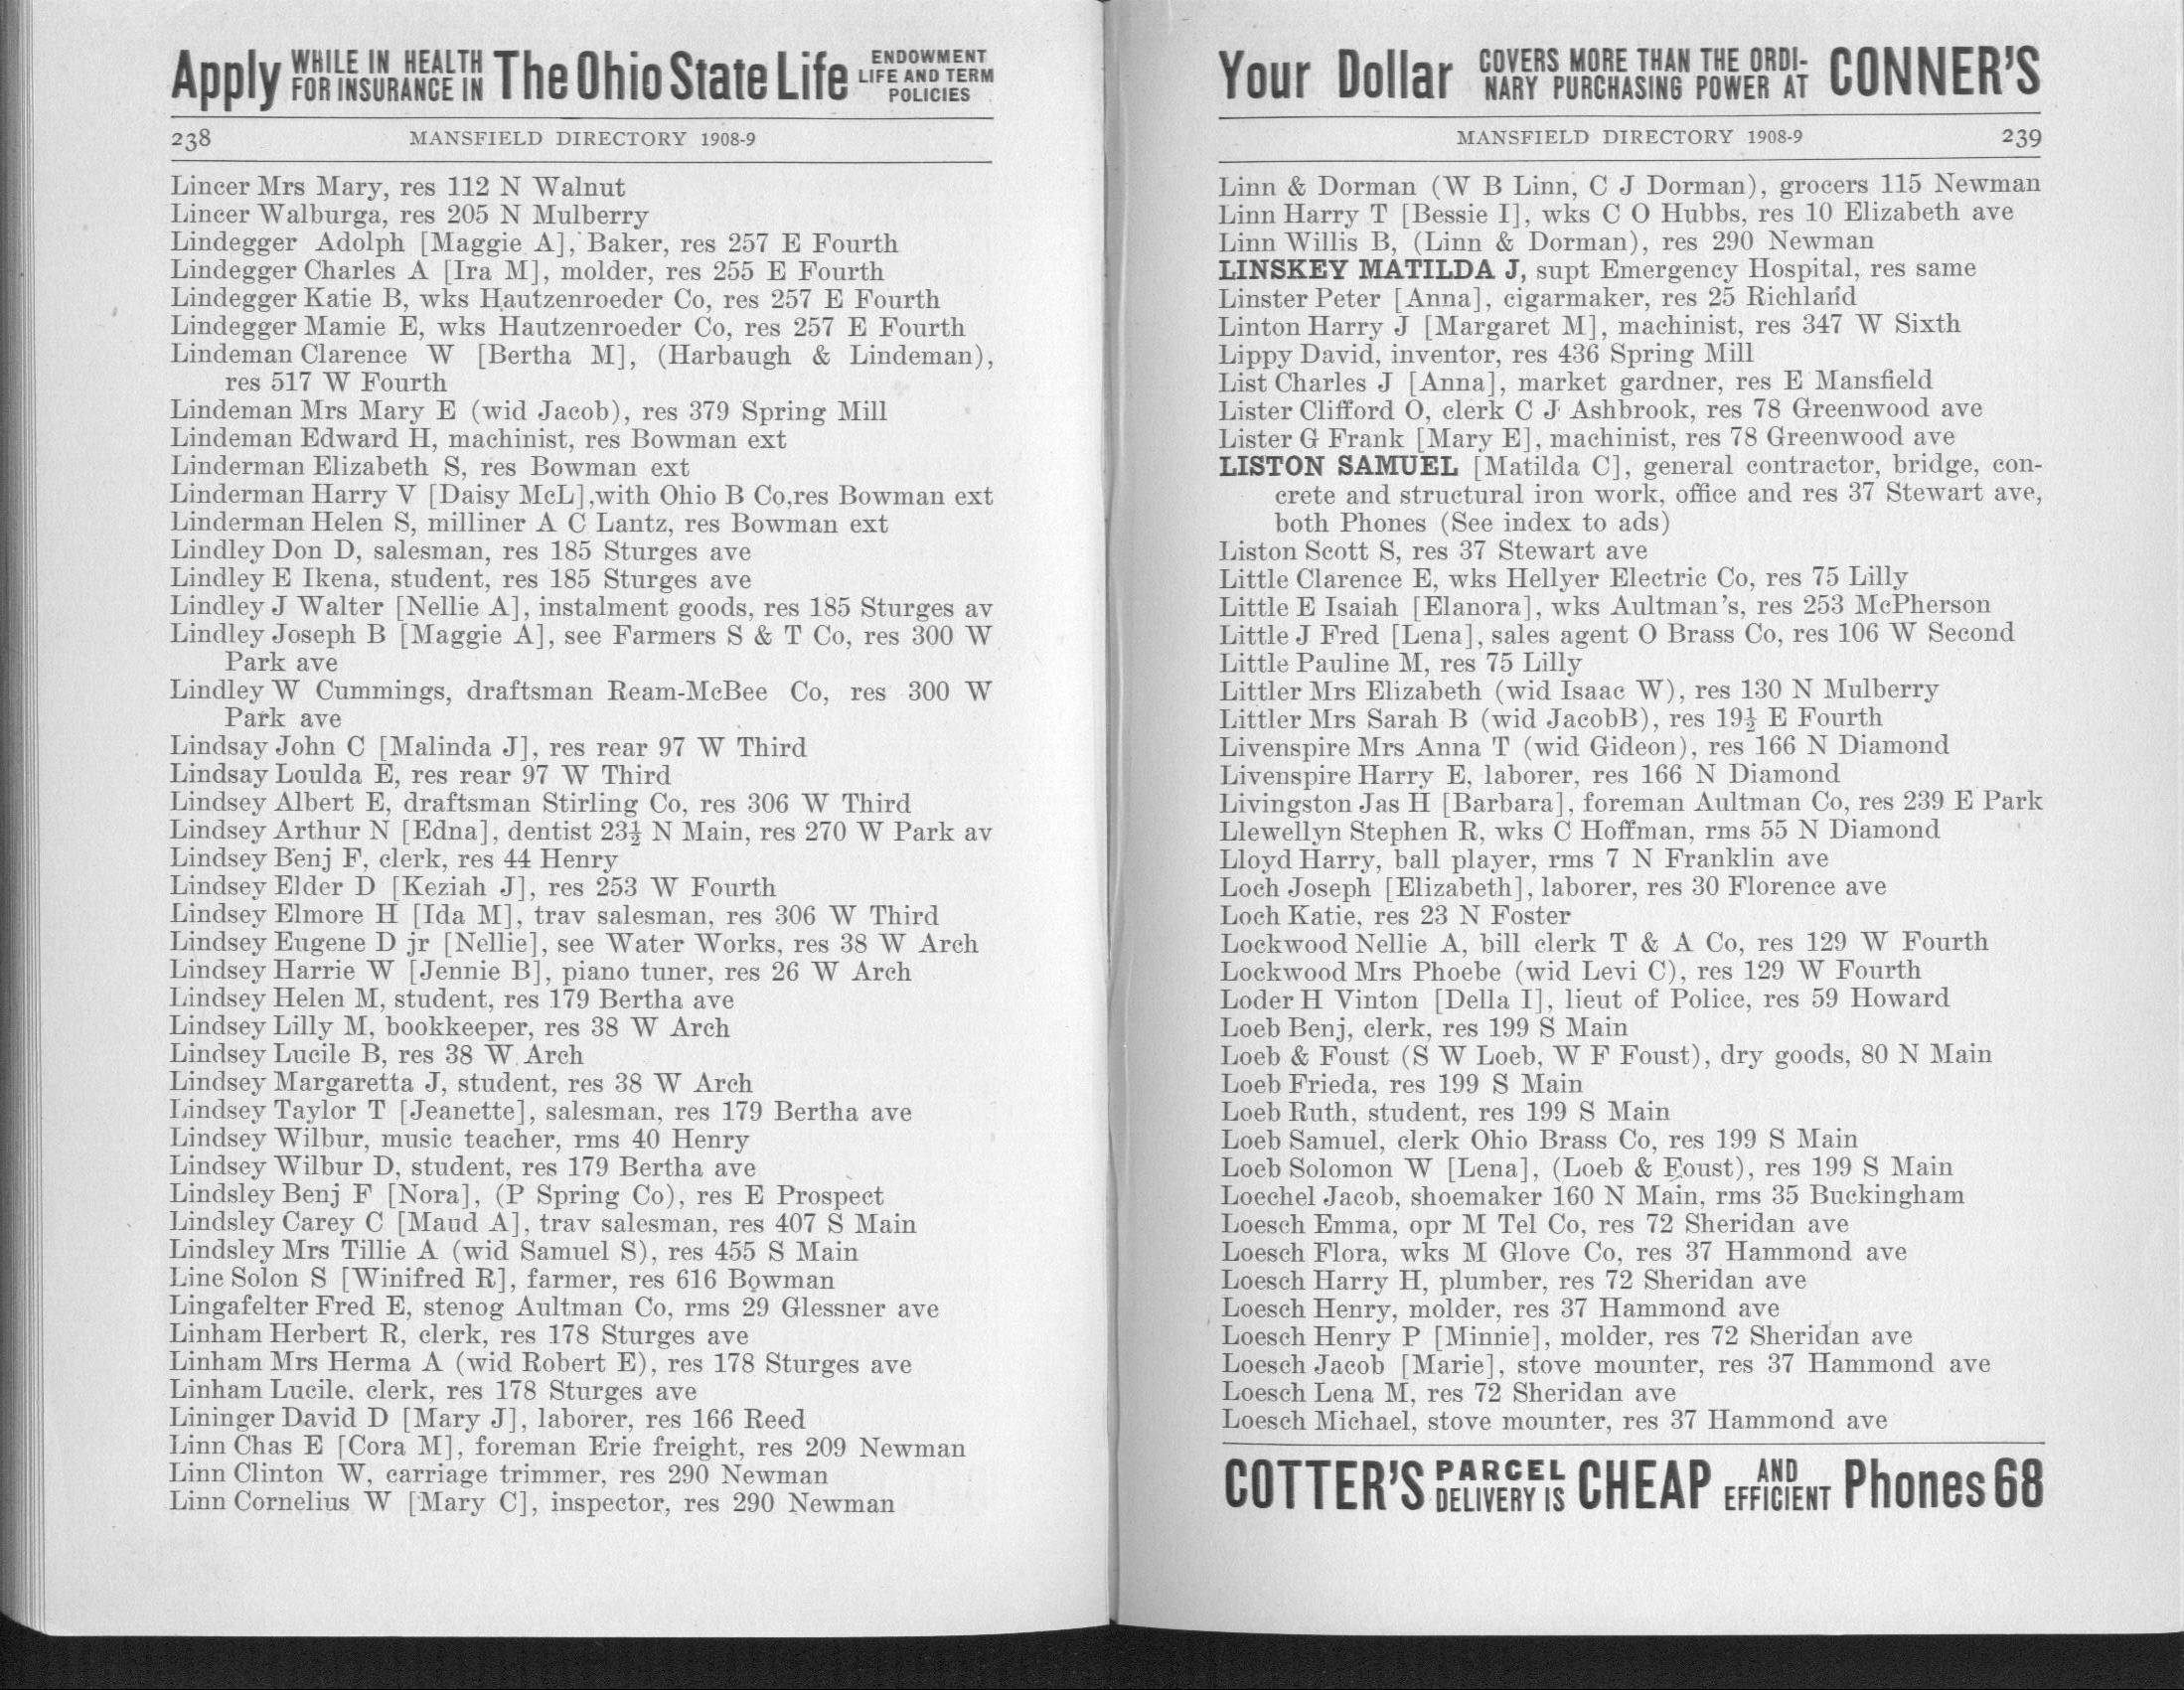 Burch Directory Company's MANSFIELD CITY DIRECTORY, 1908-1909